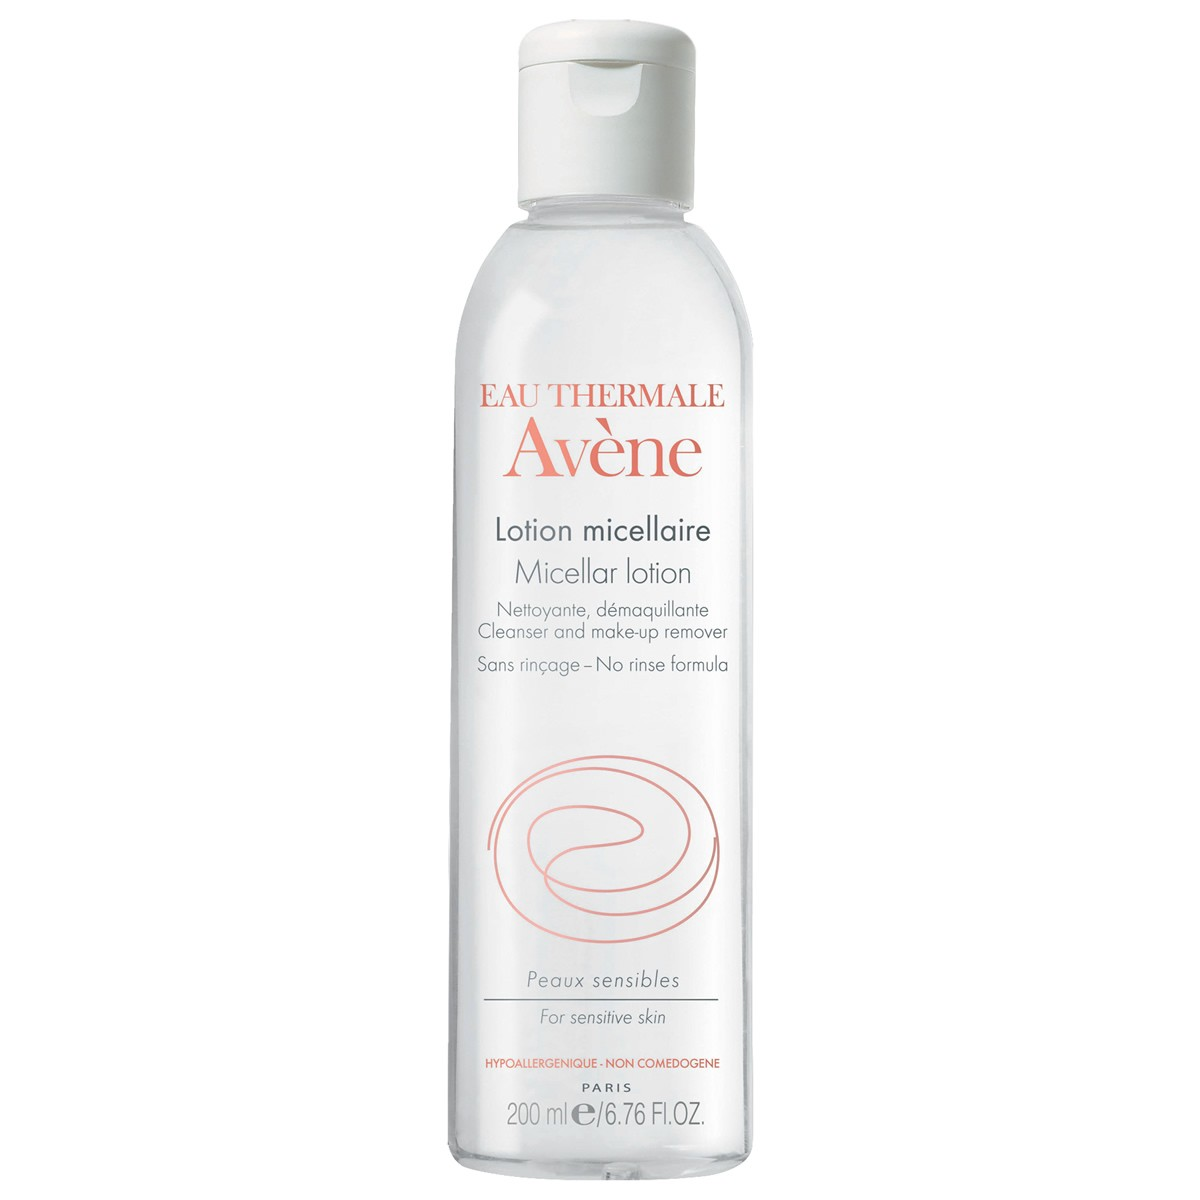 Avene Micellar Lotion Cleanser & Make-Up Remover